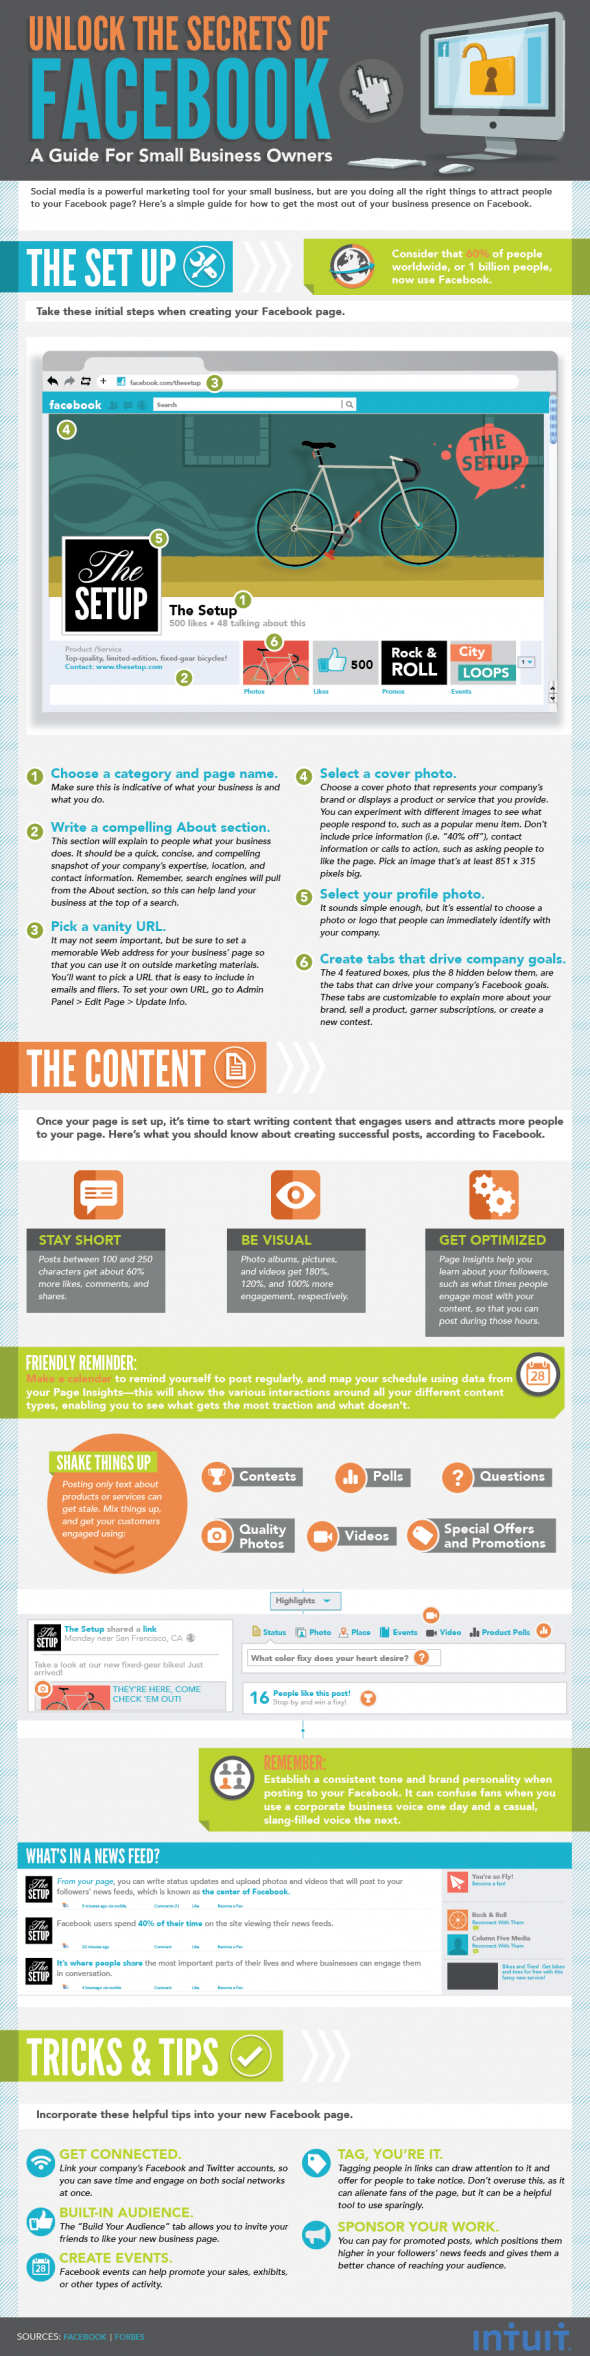 Intuit-FB-marketing-tips-590x2356